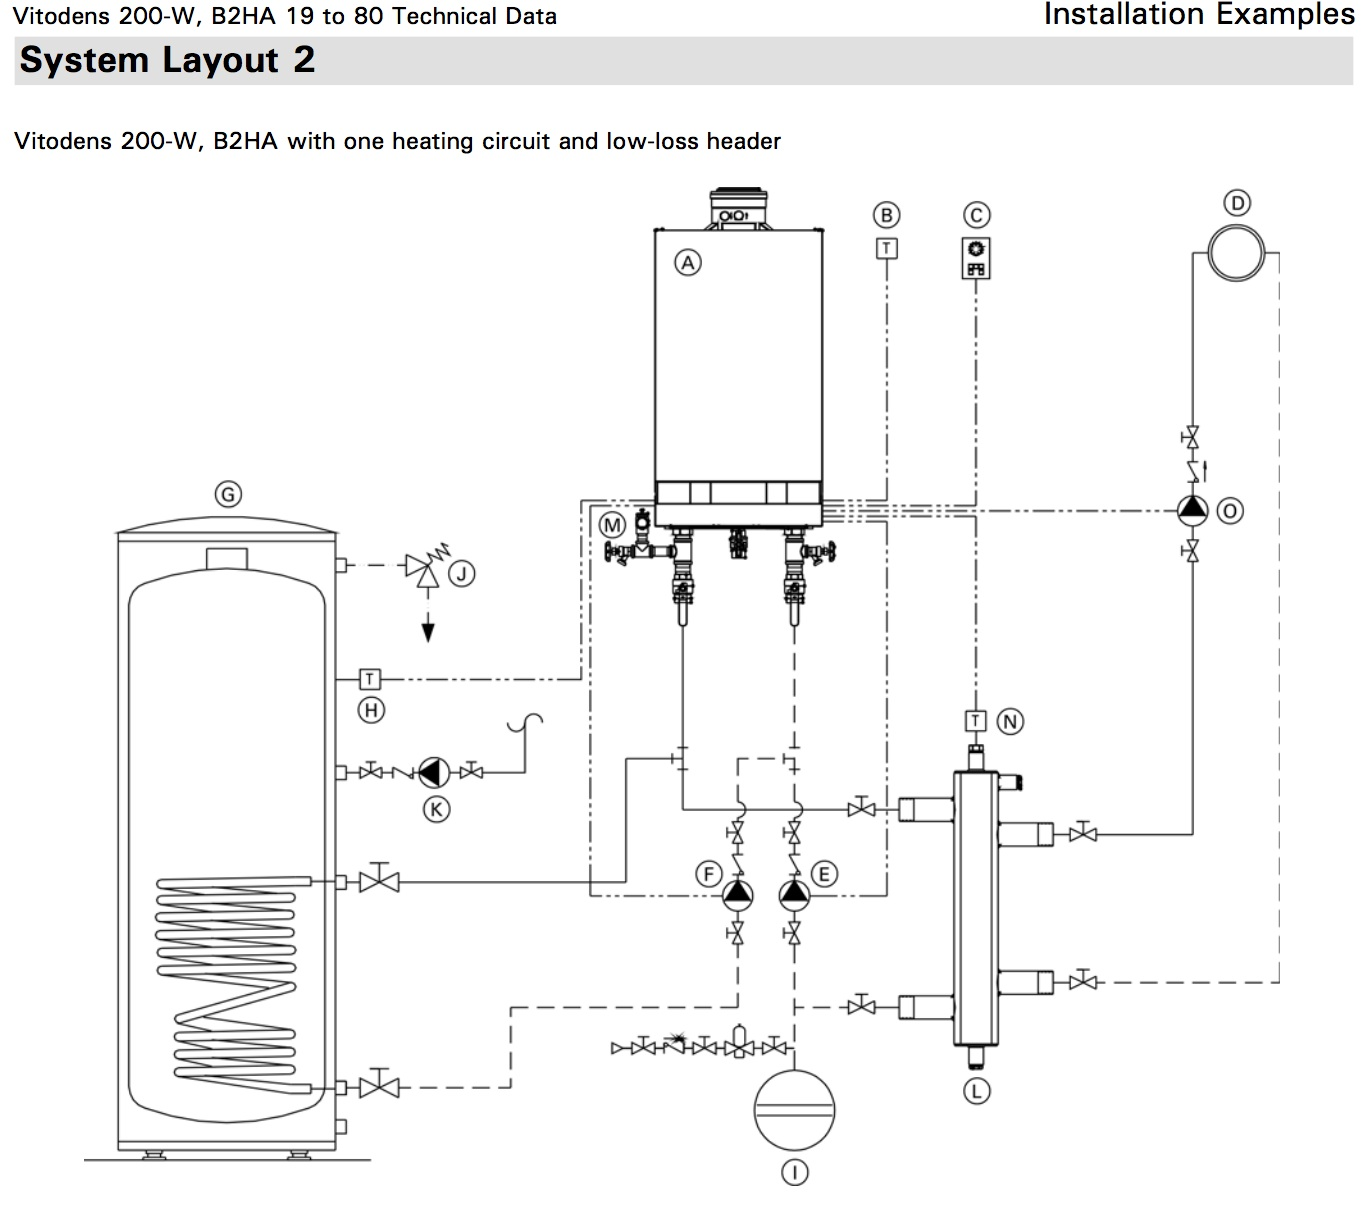 Wiring Diagram For S Plan Heating System Gandul 45 77 79 119 Residential Electrical Wiring Diagrams  sc 1 st  Zielgate.com : s plan heating wiring diagram - yogabreezes.com